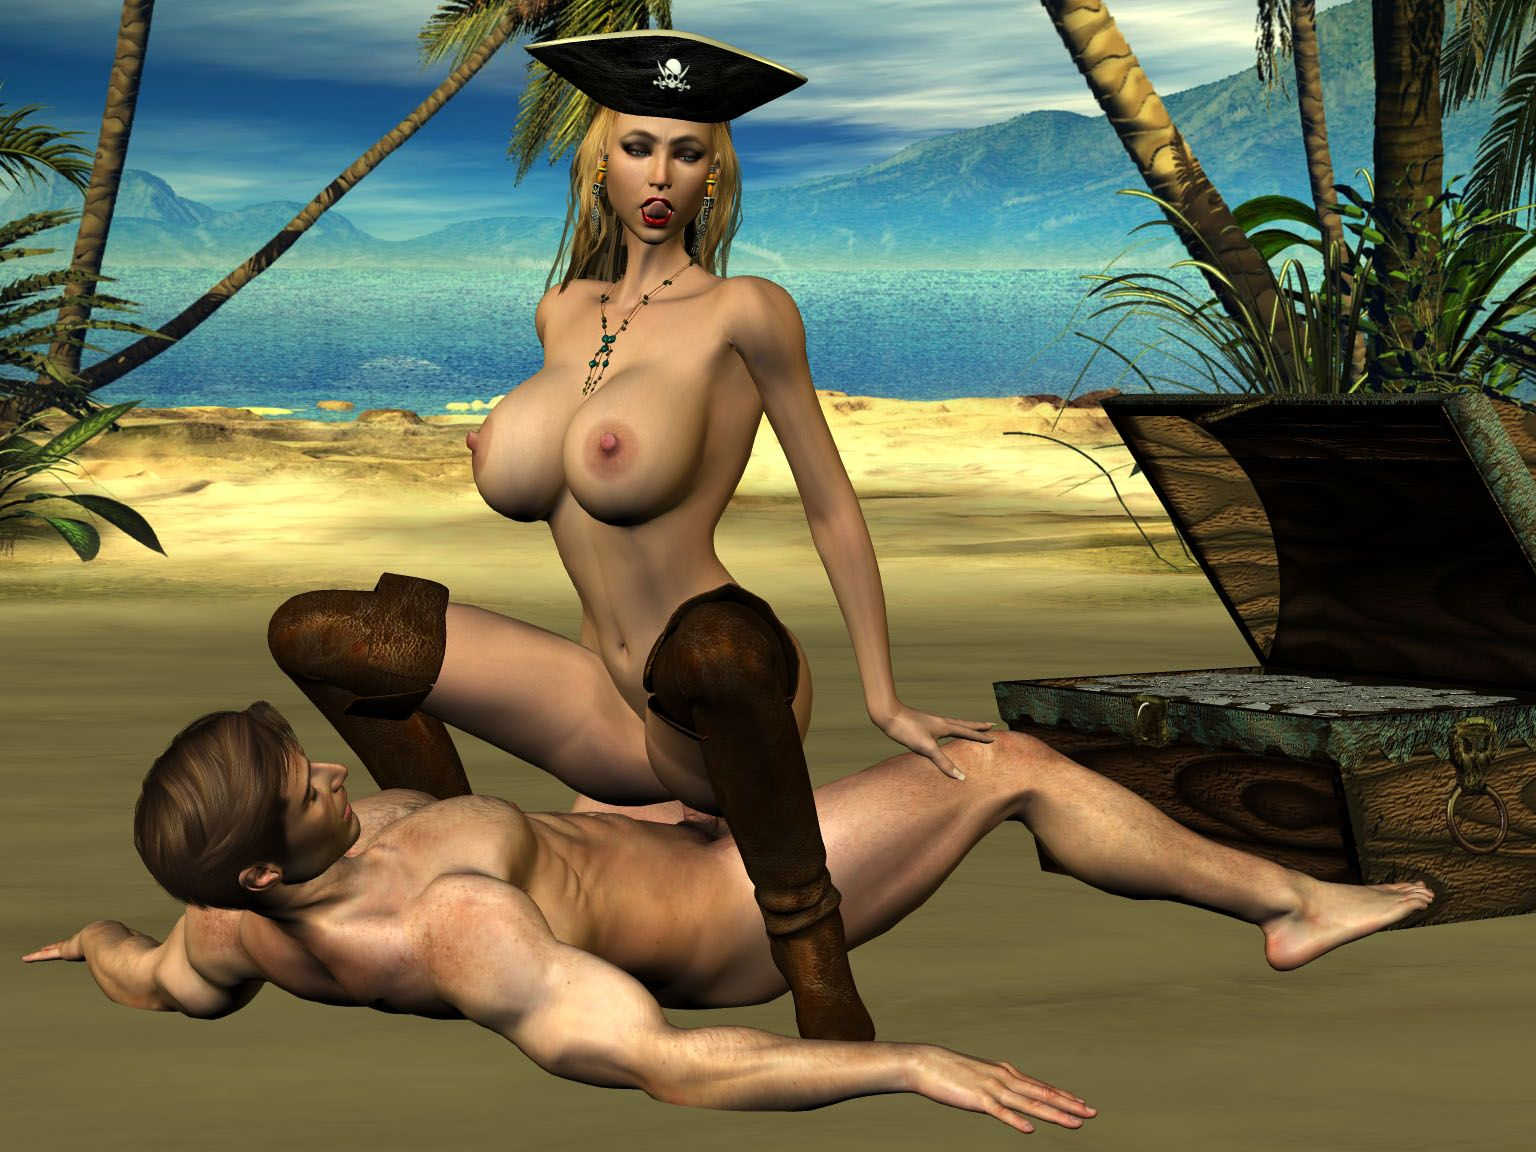 Pirate porn fantasy porncraft scene